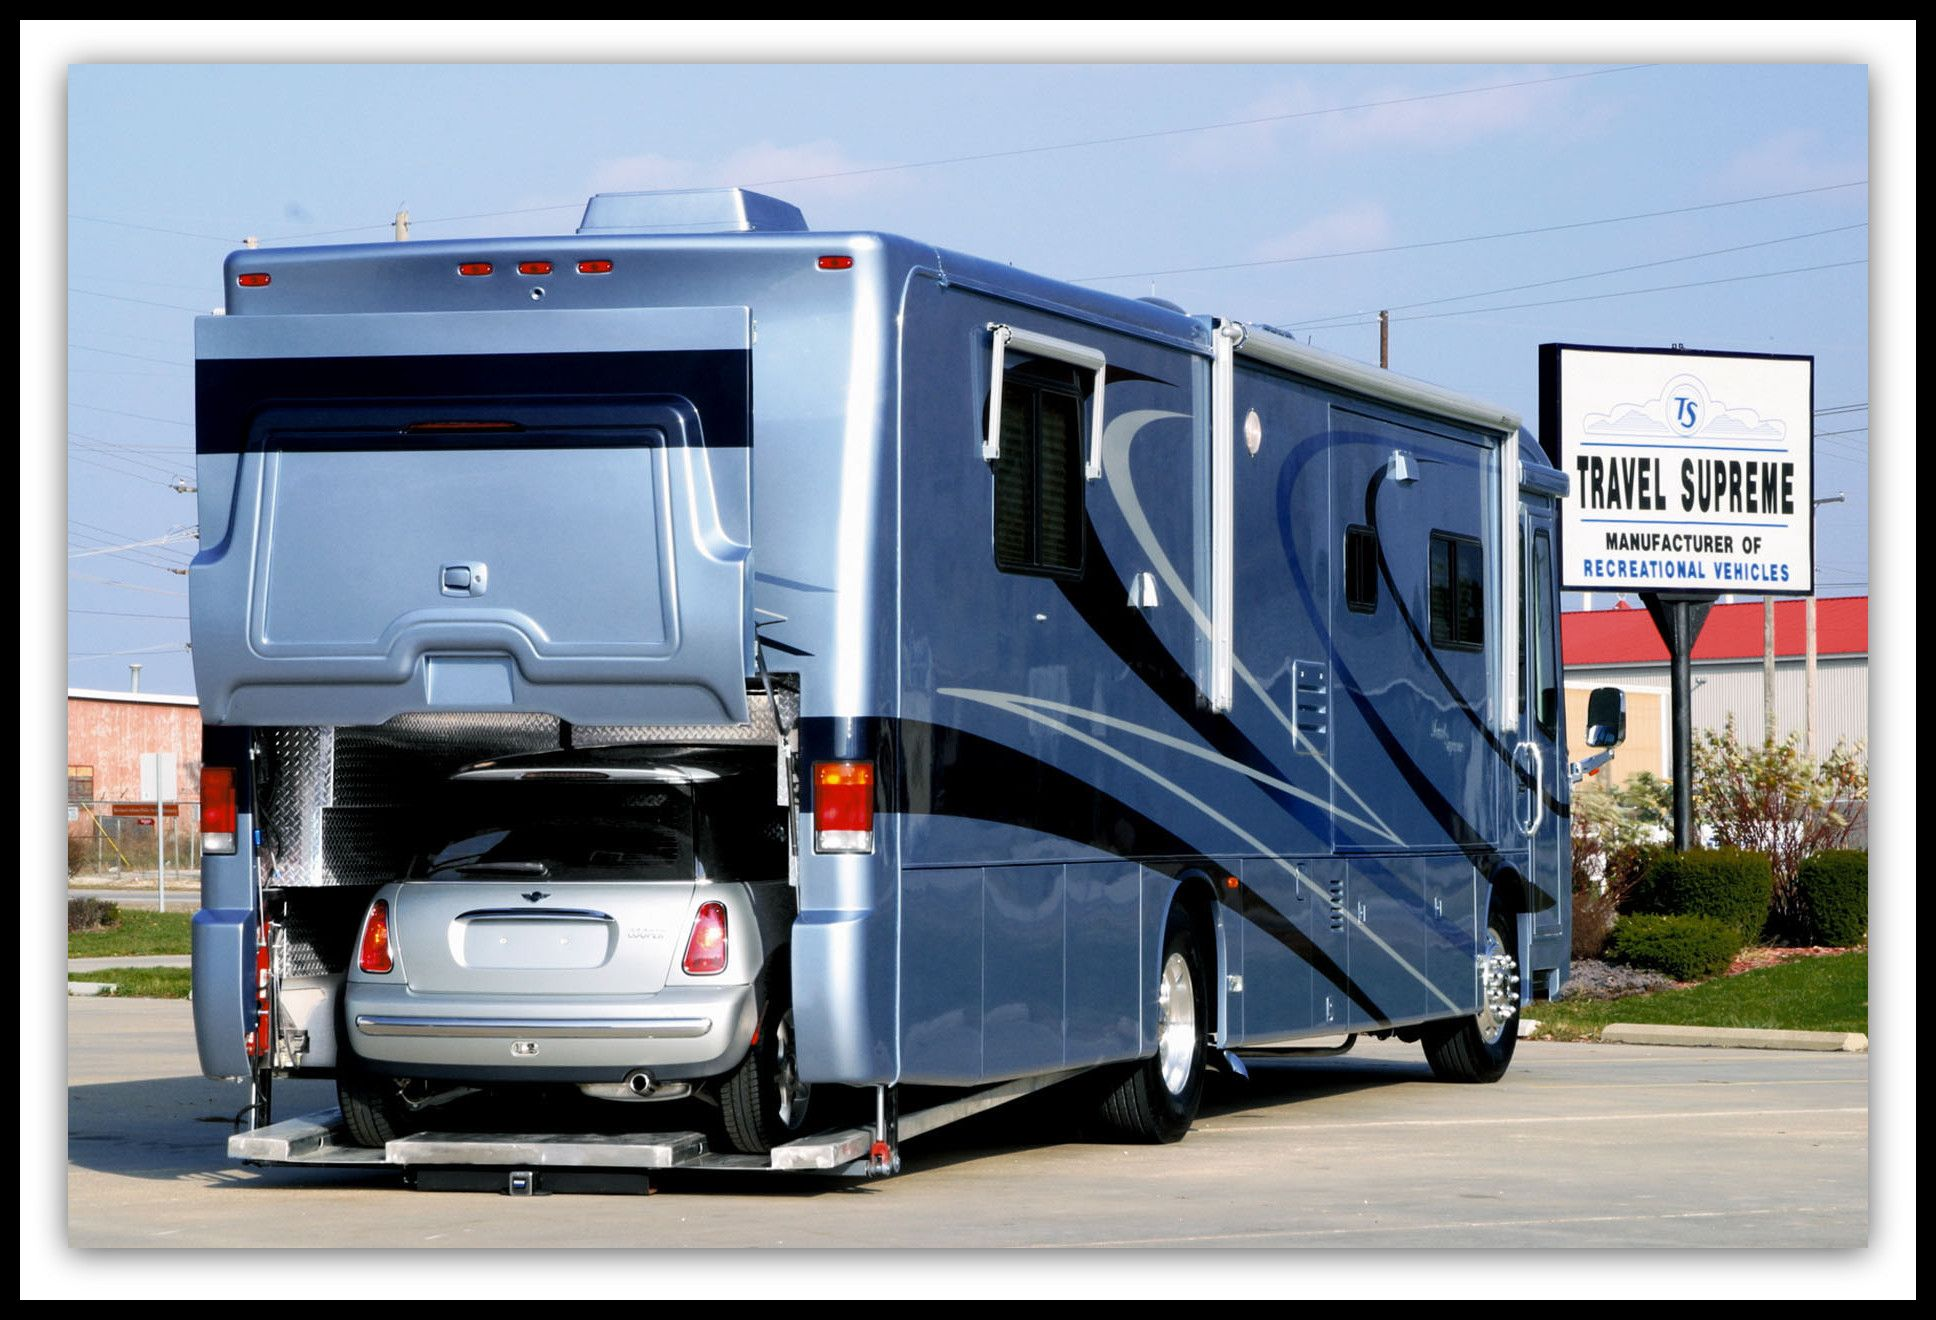 Spartan travel supreme me a revolutionary mid engined rv for Class a rv with car garage